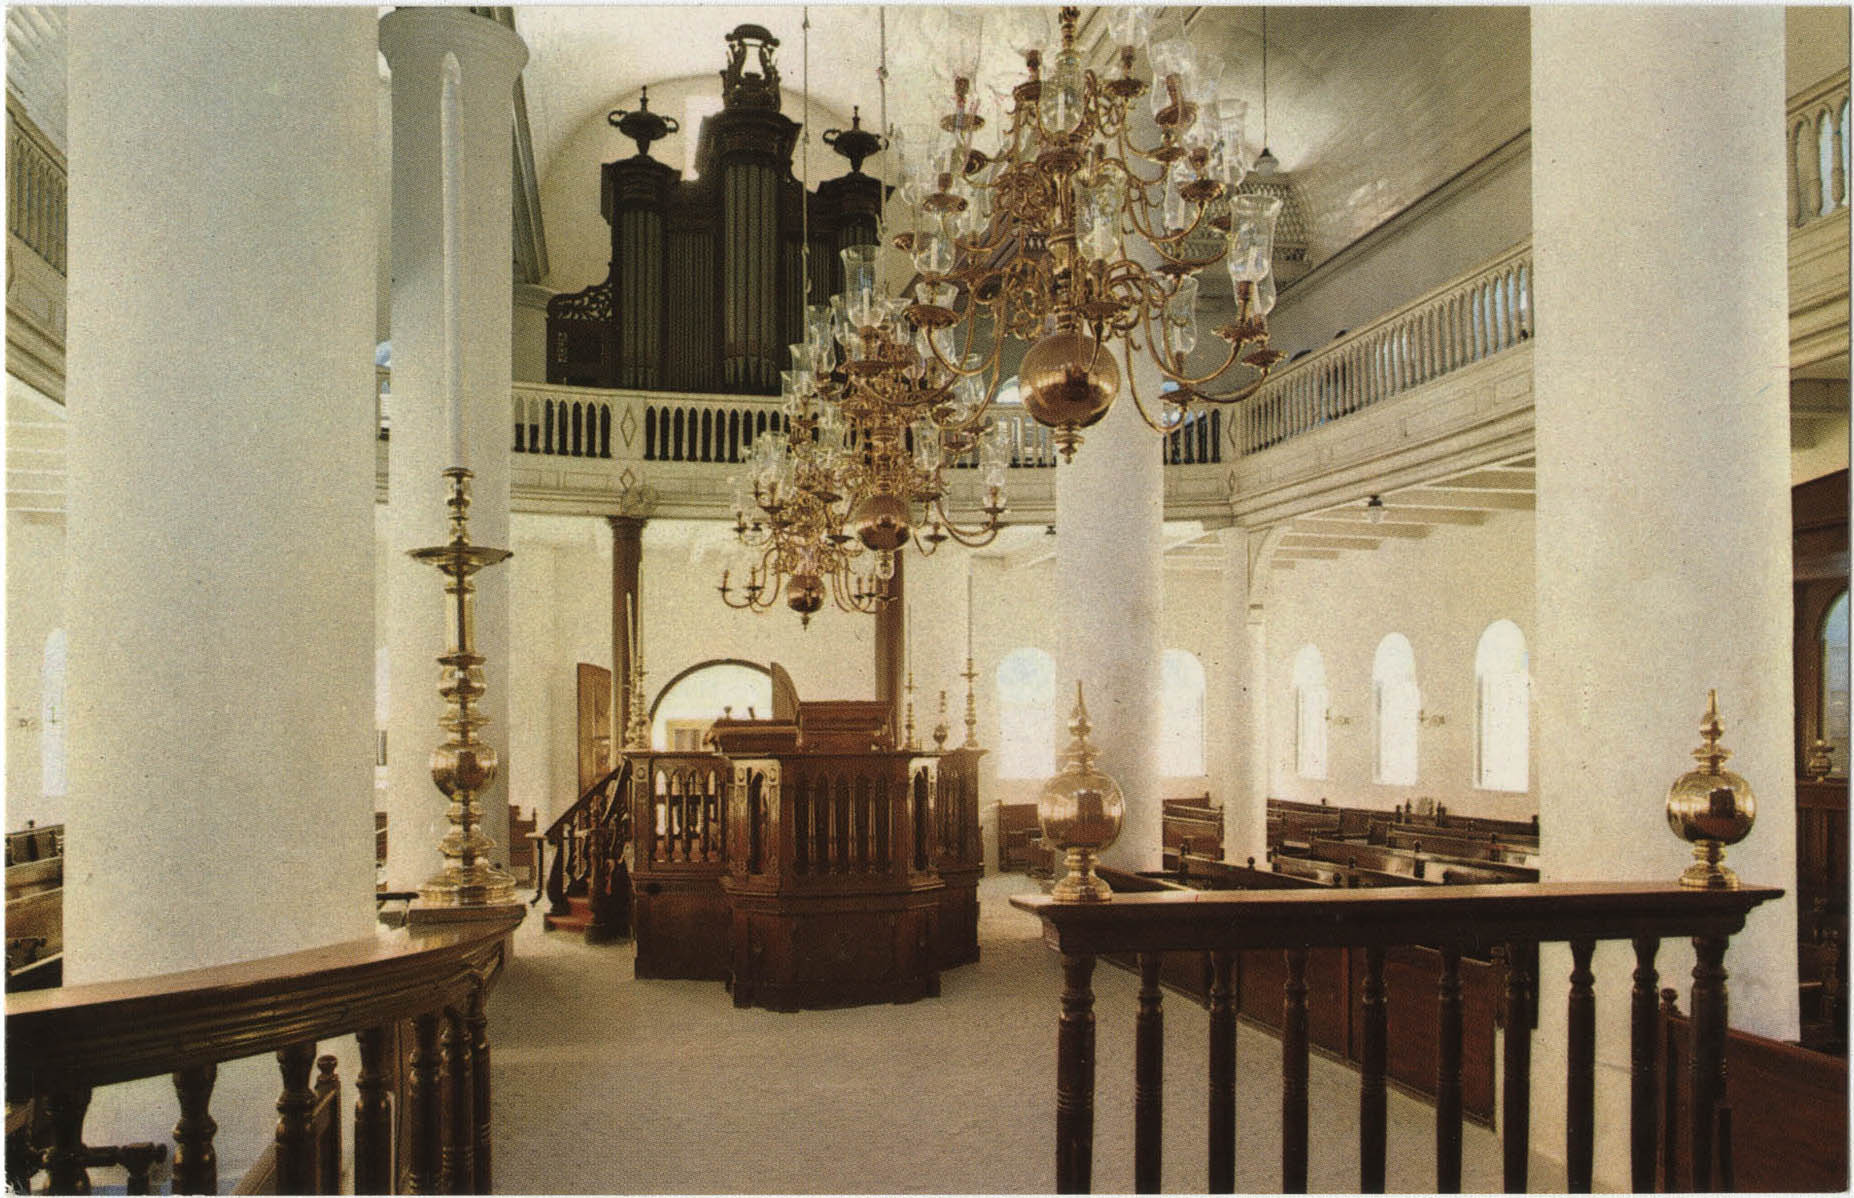 Interior of Mikve Israel-Emanuel Synagogue, dedicated in 1732, oldest in continuous use in Western Hemisphere. View is towards main entrance, showing Tebah (reading platform) and beautiful old brass chandeliers over sandcovered floor flanked by mahogany wooden benches.